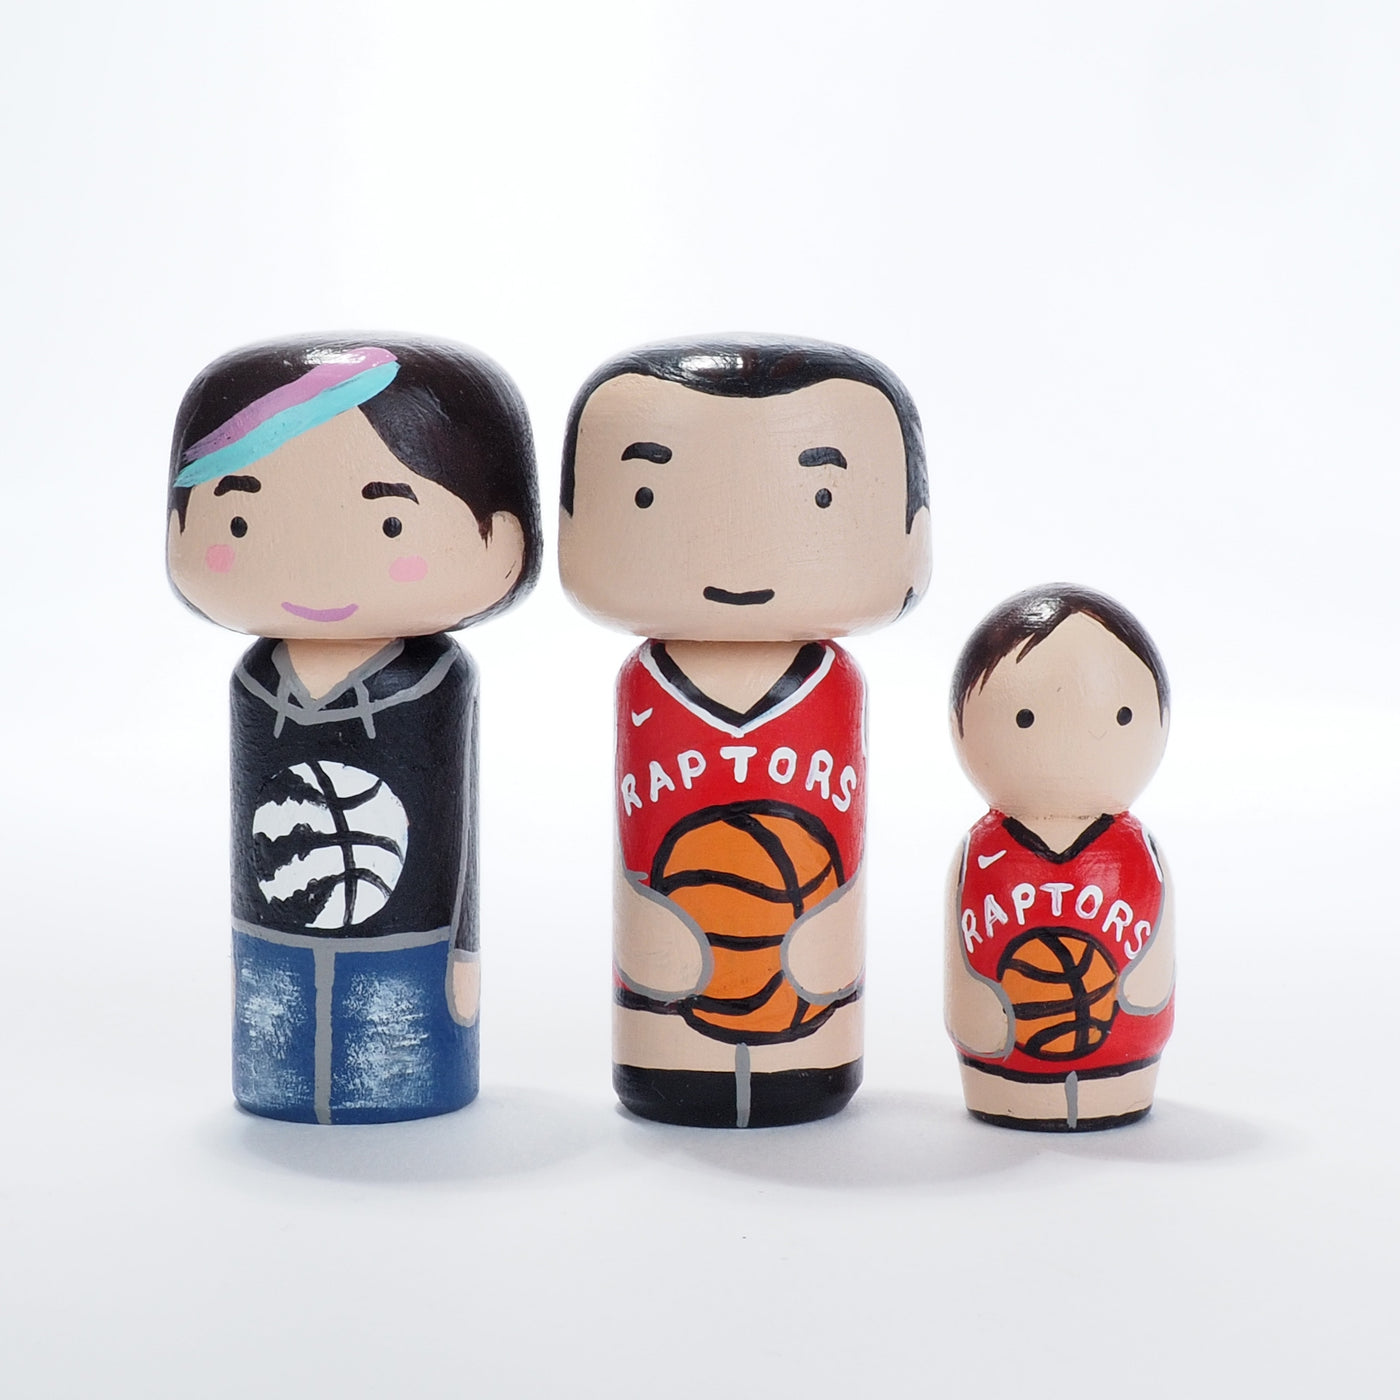 We the North!  Toronto Raptors.  Mini family Portrait with Raptors Jerseys!